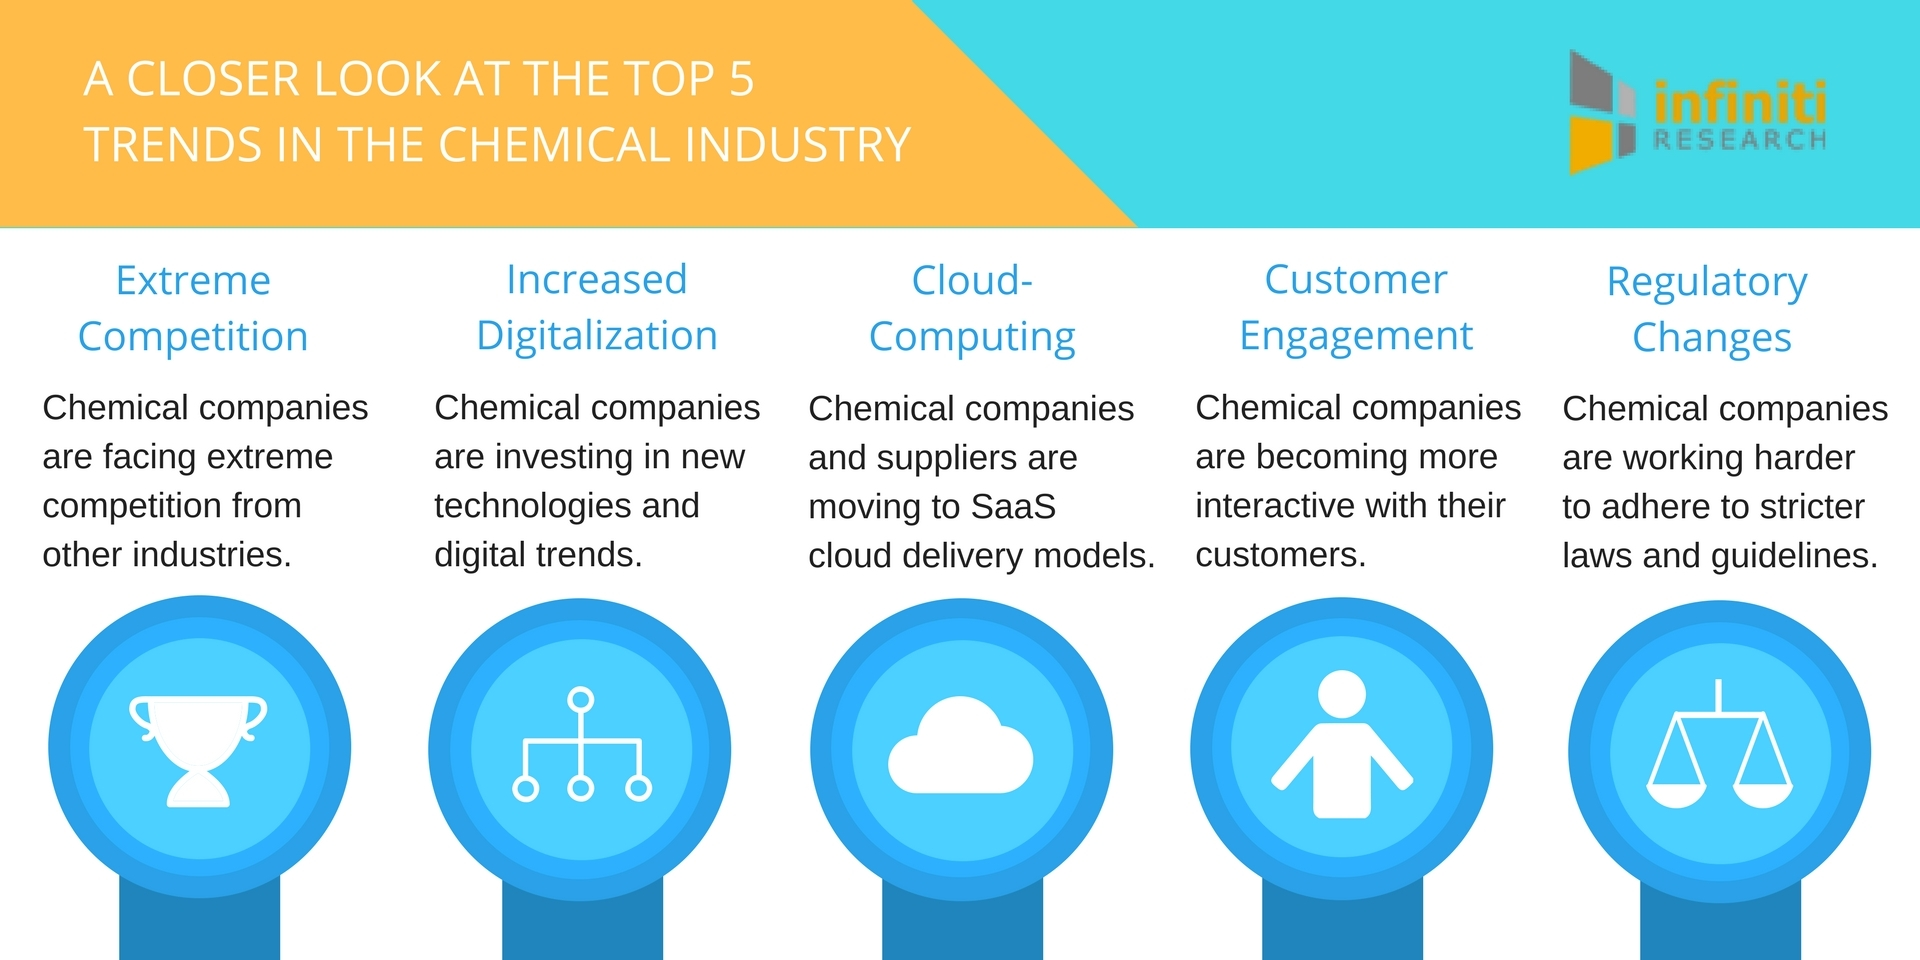 Infiniti Research Announces Their List of Major Trends in the